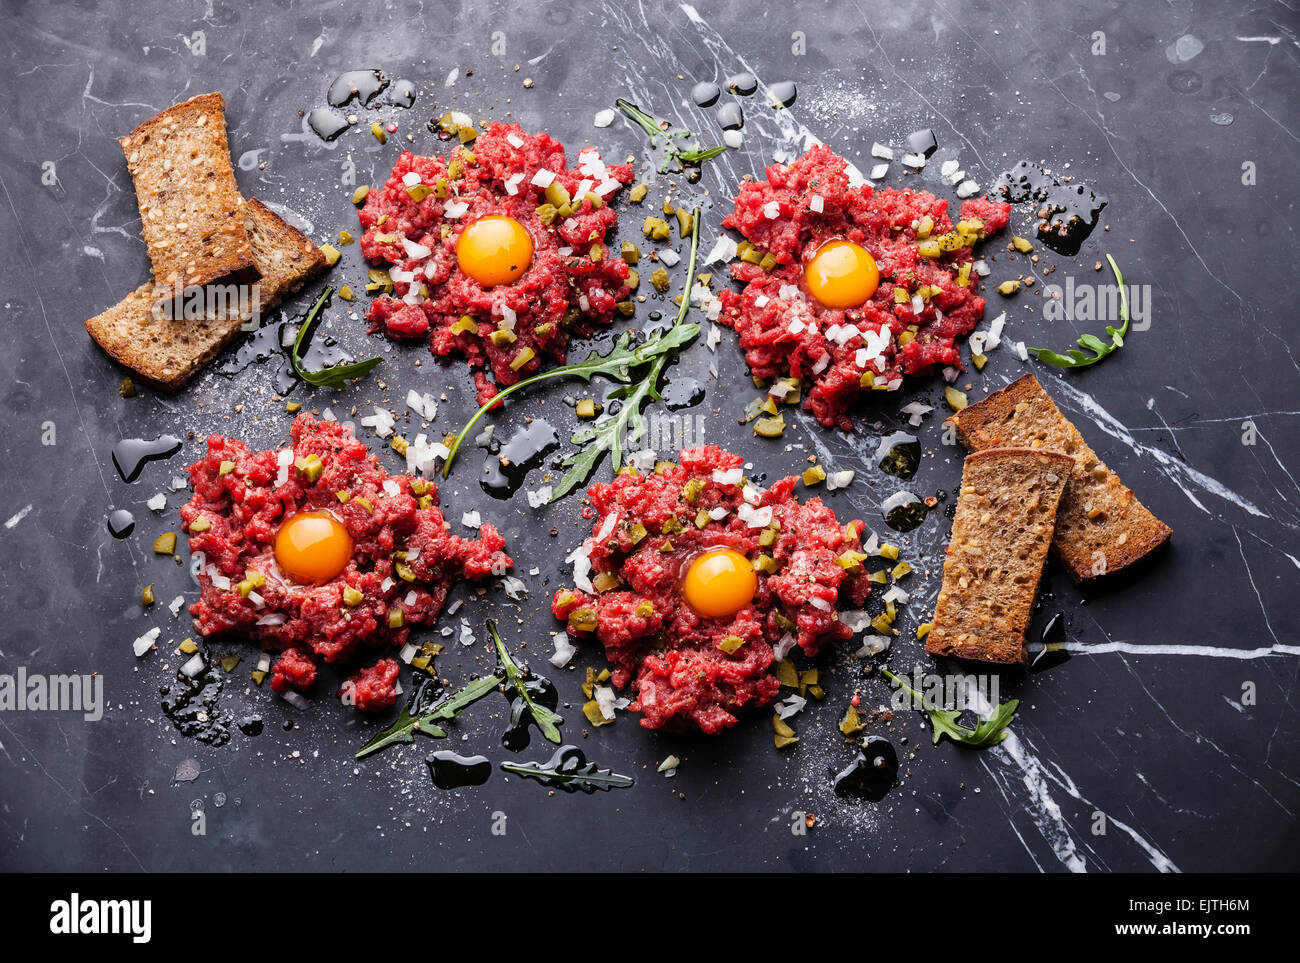 Beef tartare with pickled cucumber and fresh onion on dark marble background - Stock Image